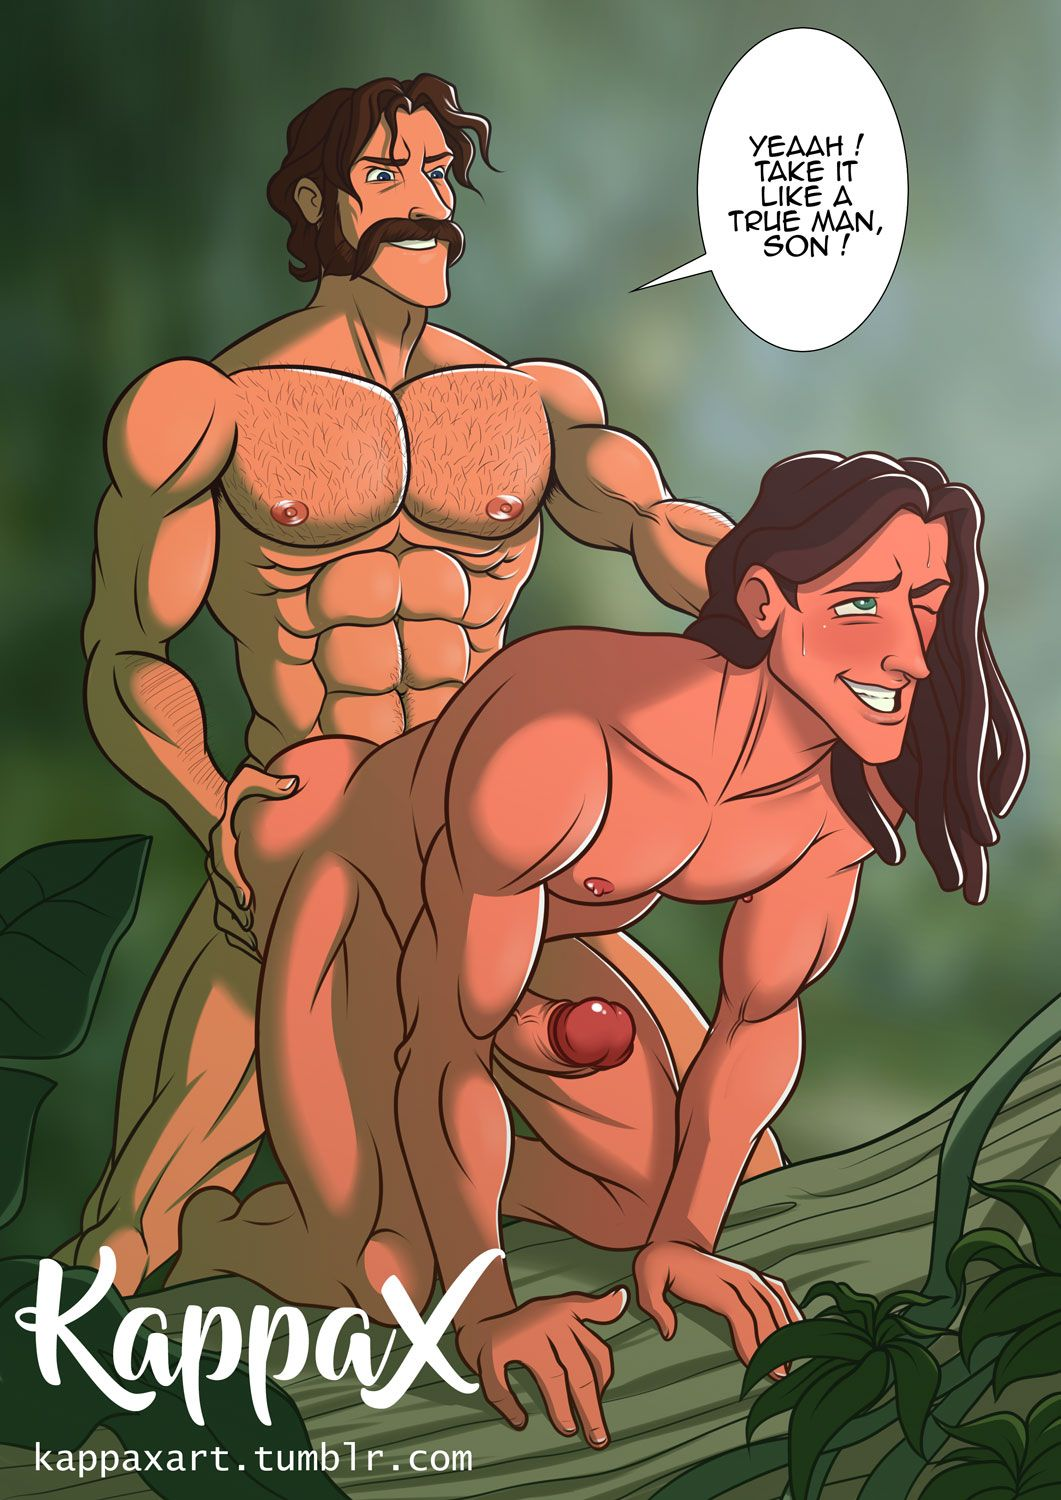 Have back. tarzan cartoon porn teeth. thats